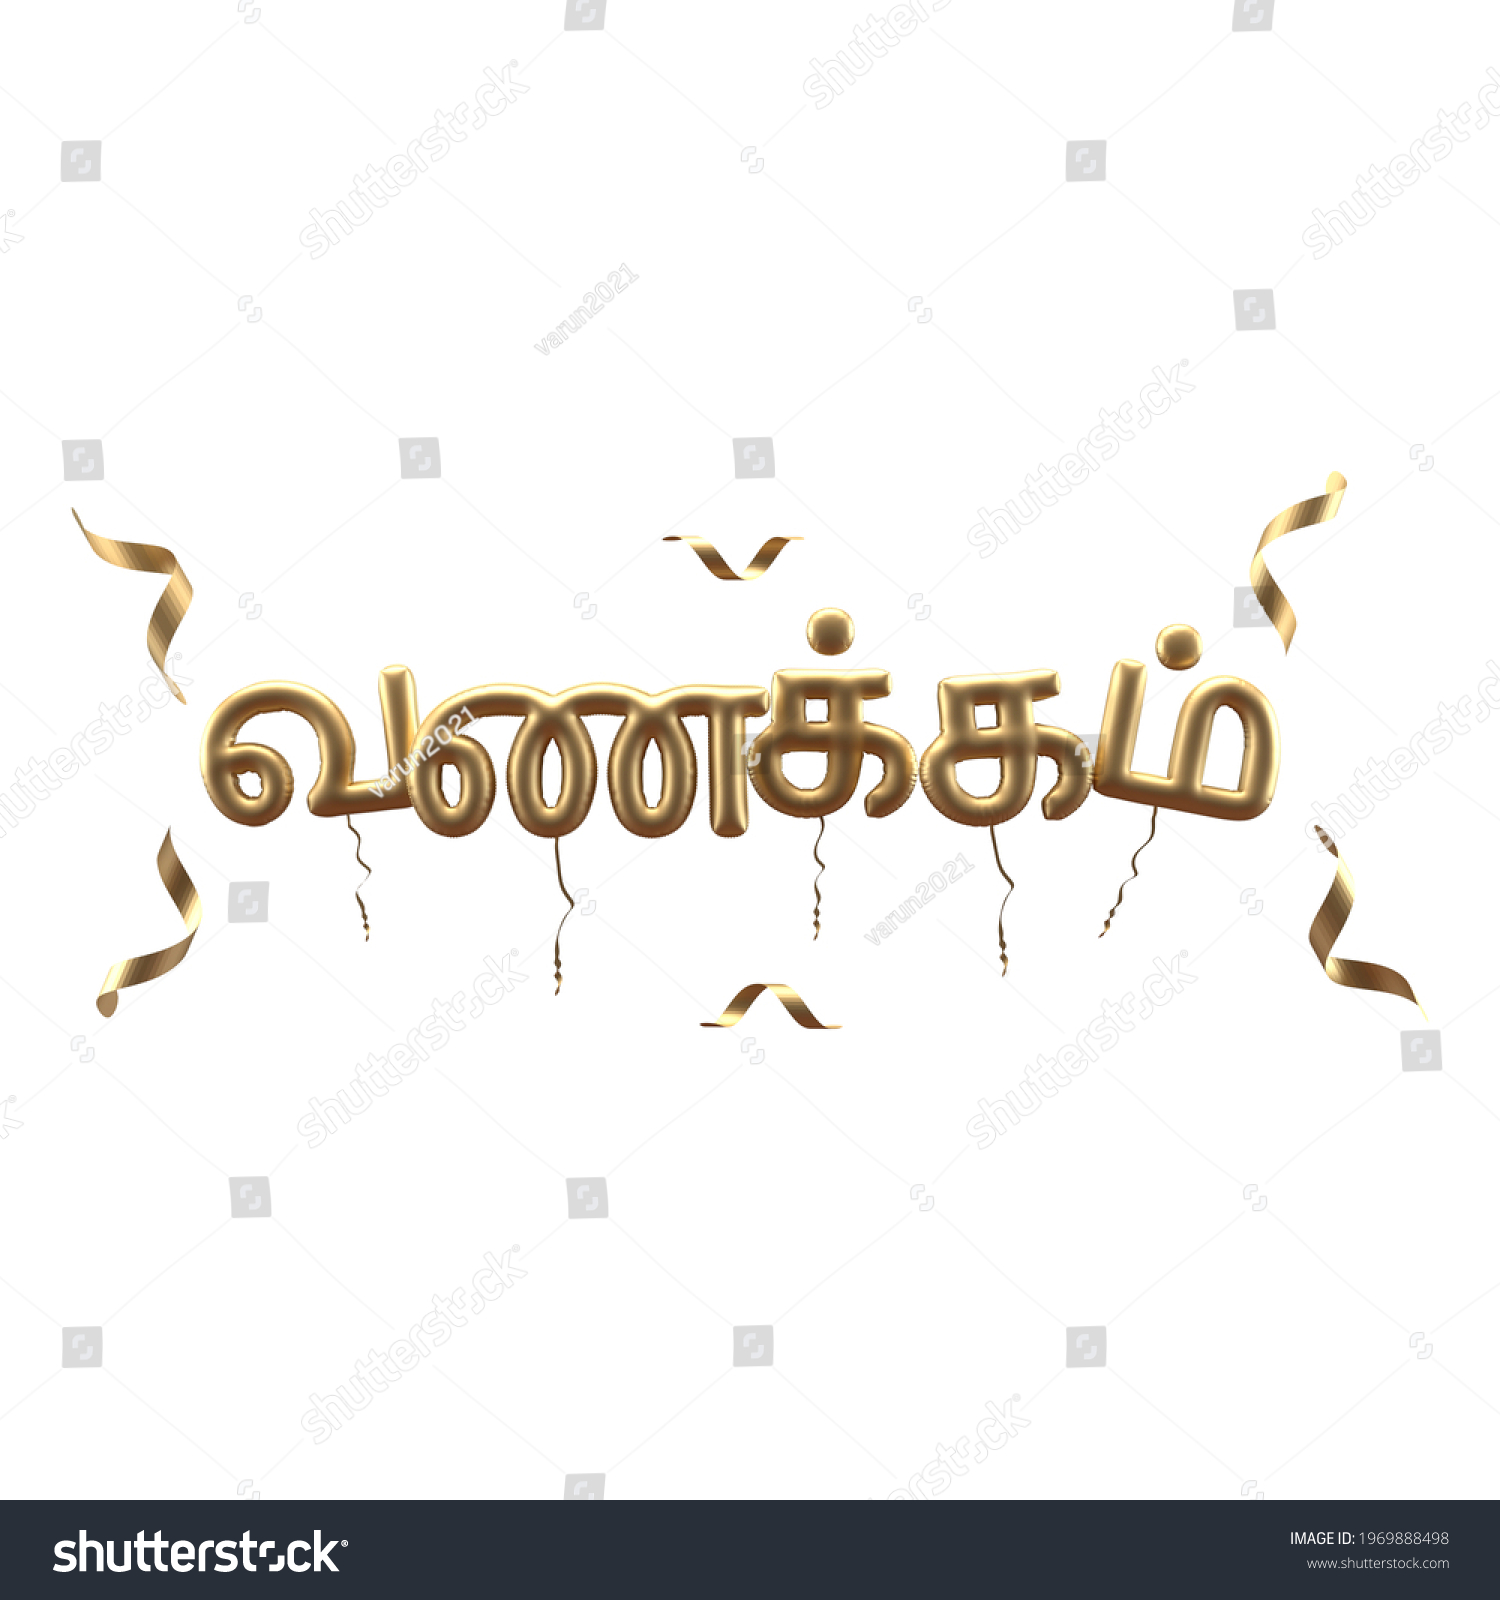 Language meaning tamil words tamil Knowledge Well: